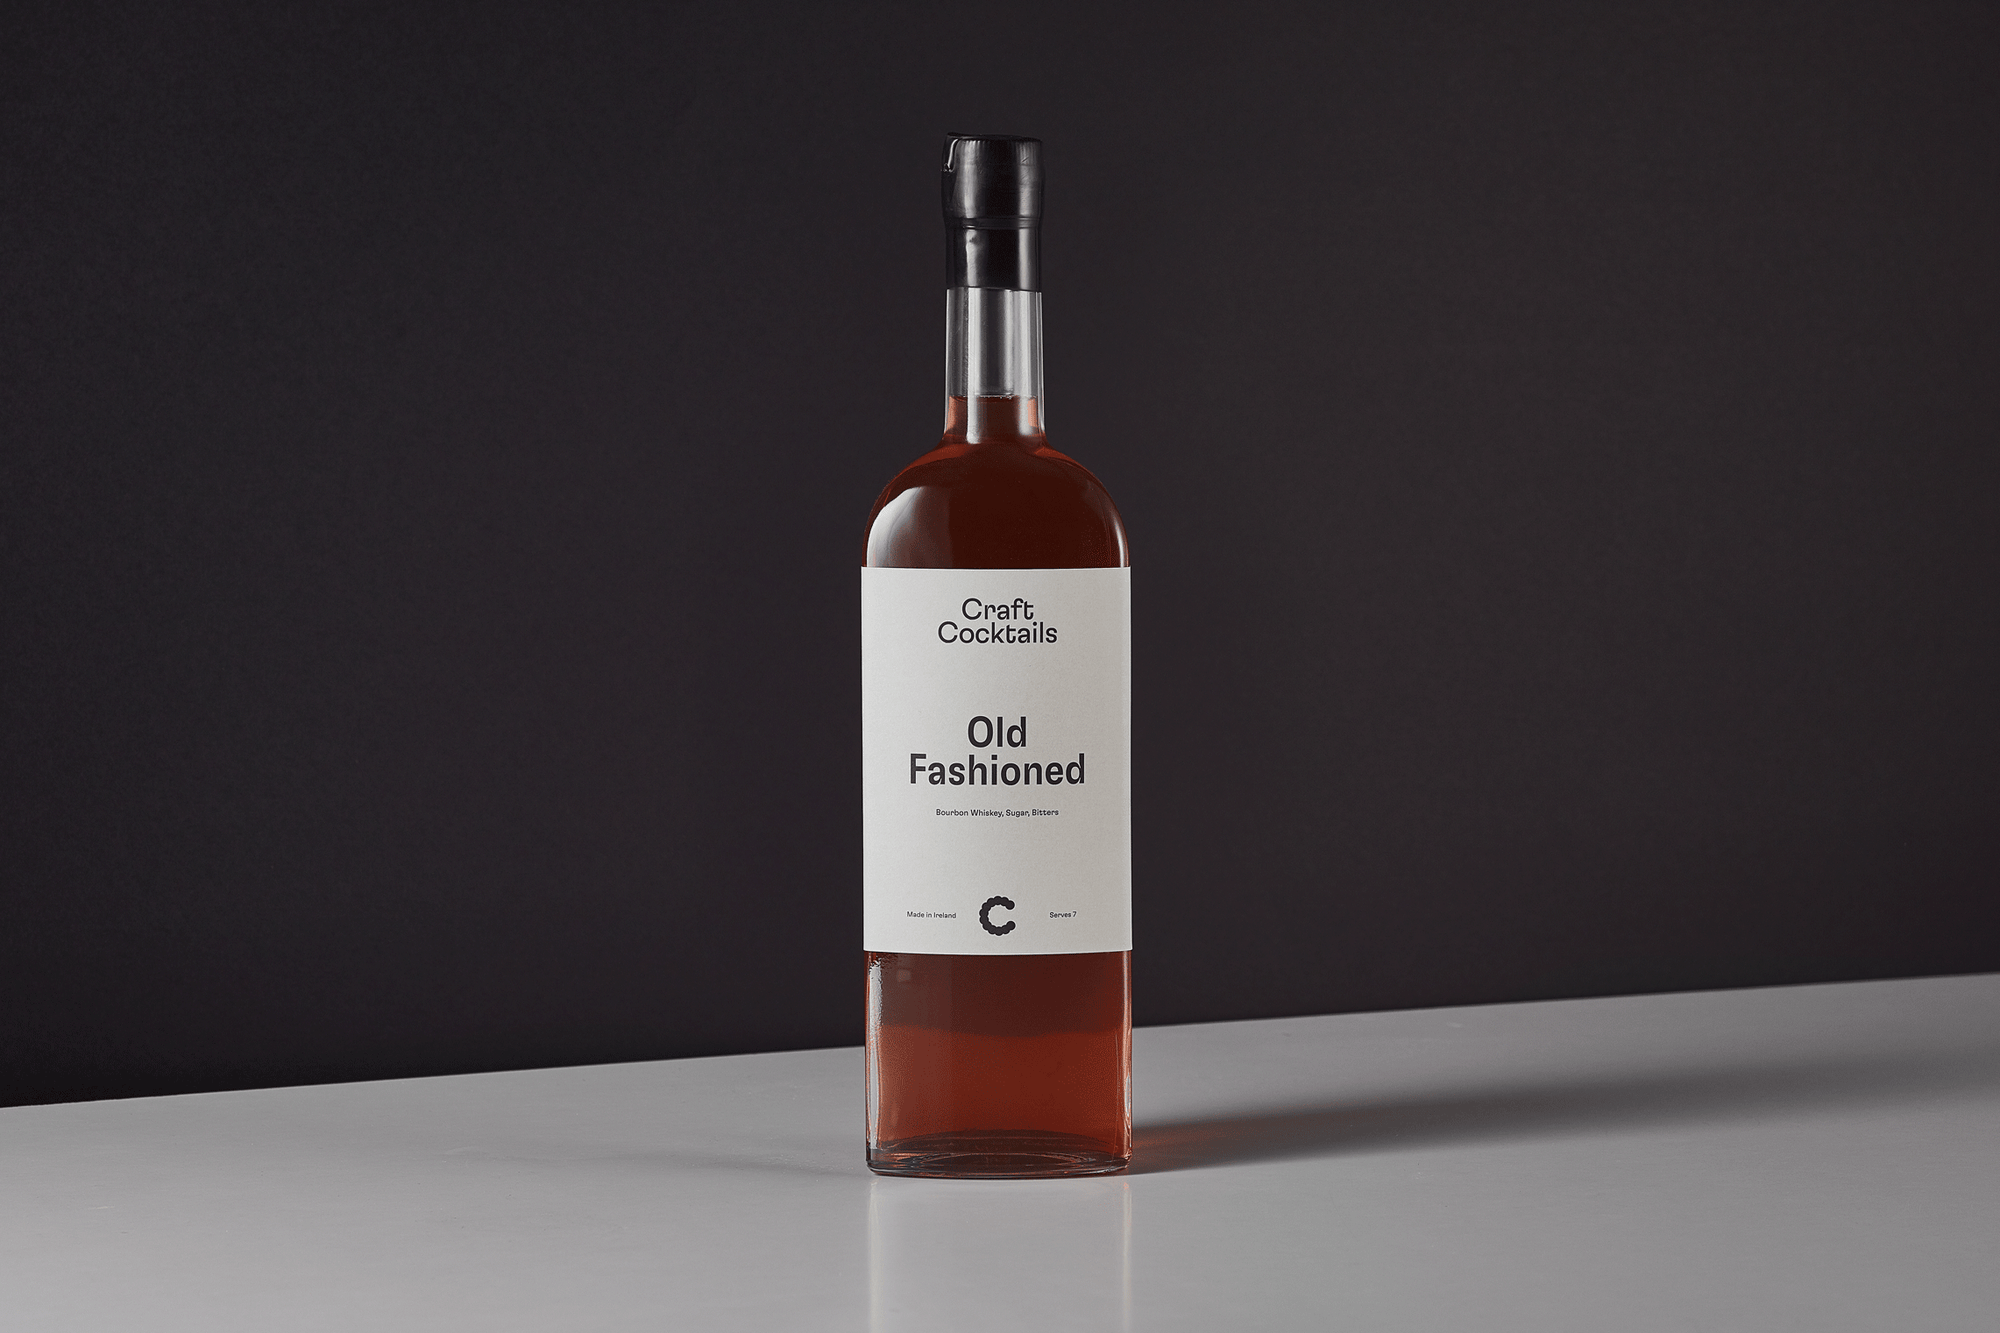 Craft Cocktails Old Fashioned 70cl